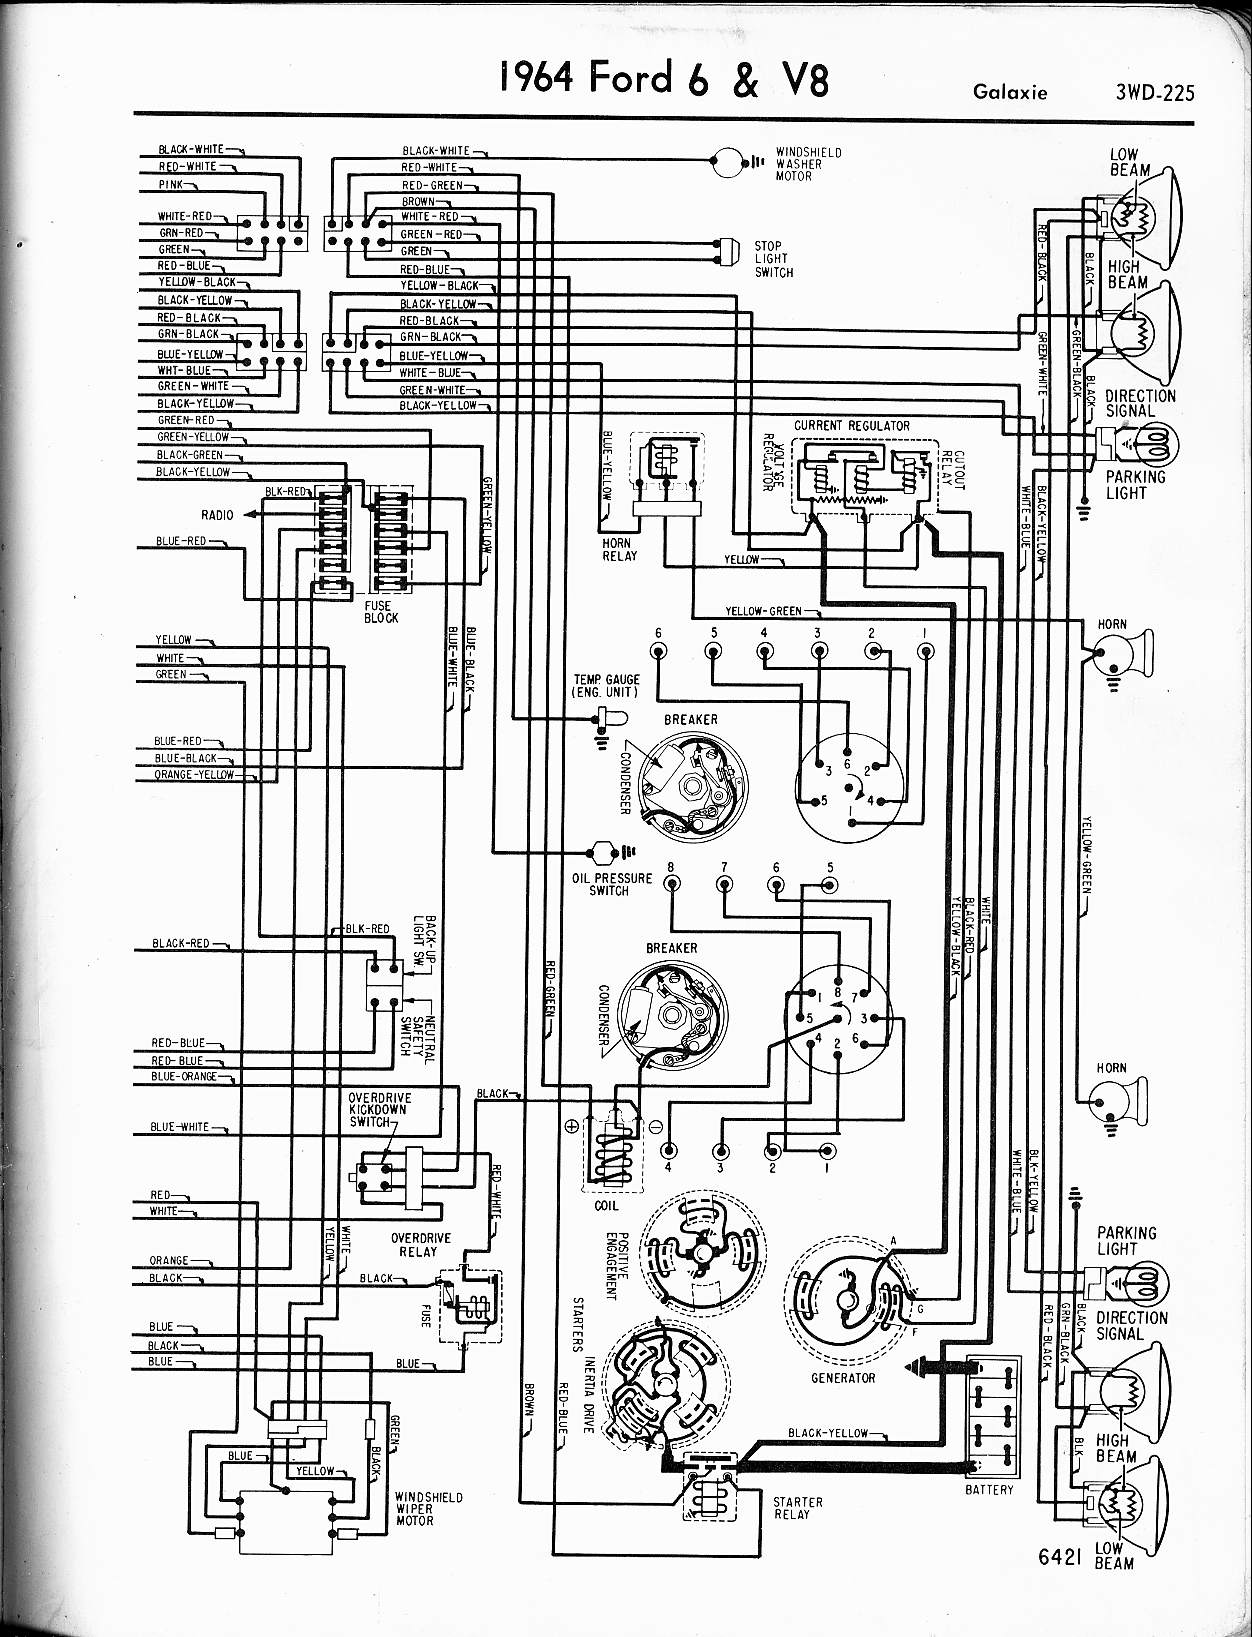 MWire5765 225 57 65 ford wiring diagrams 64 falcon wiring diagram at bakdesigns.co